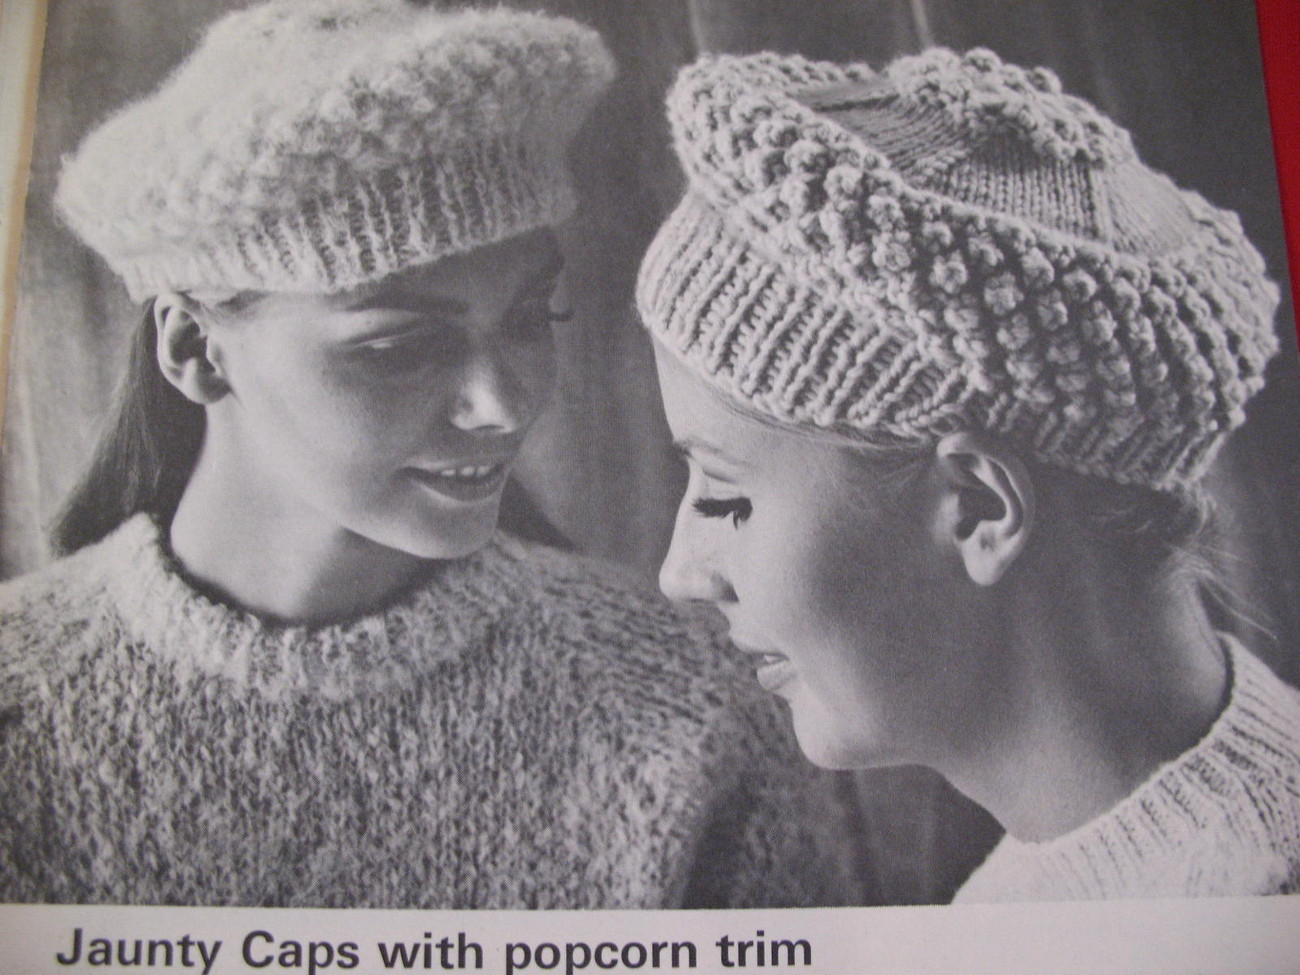 Beehive Winter Headwear Knitting Patterns Family Hats Caps image 2